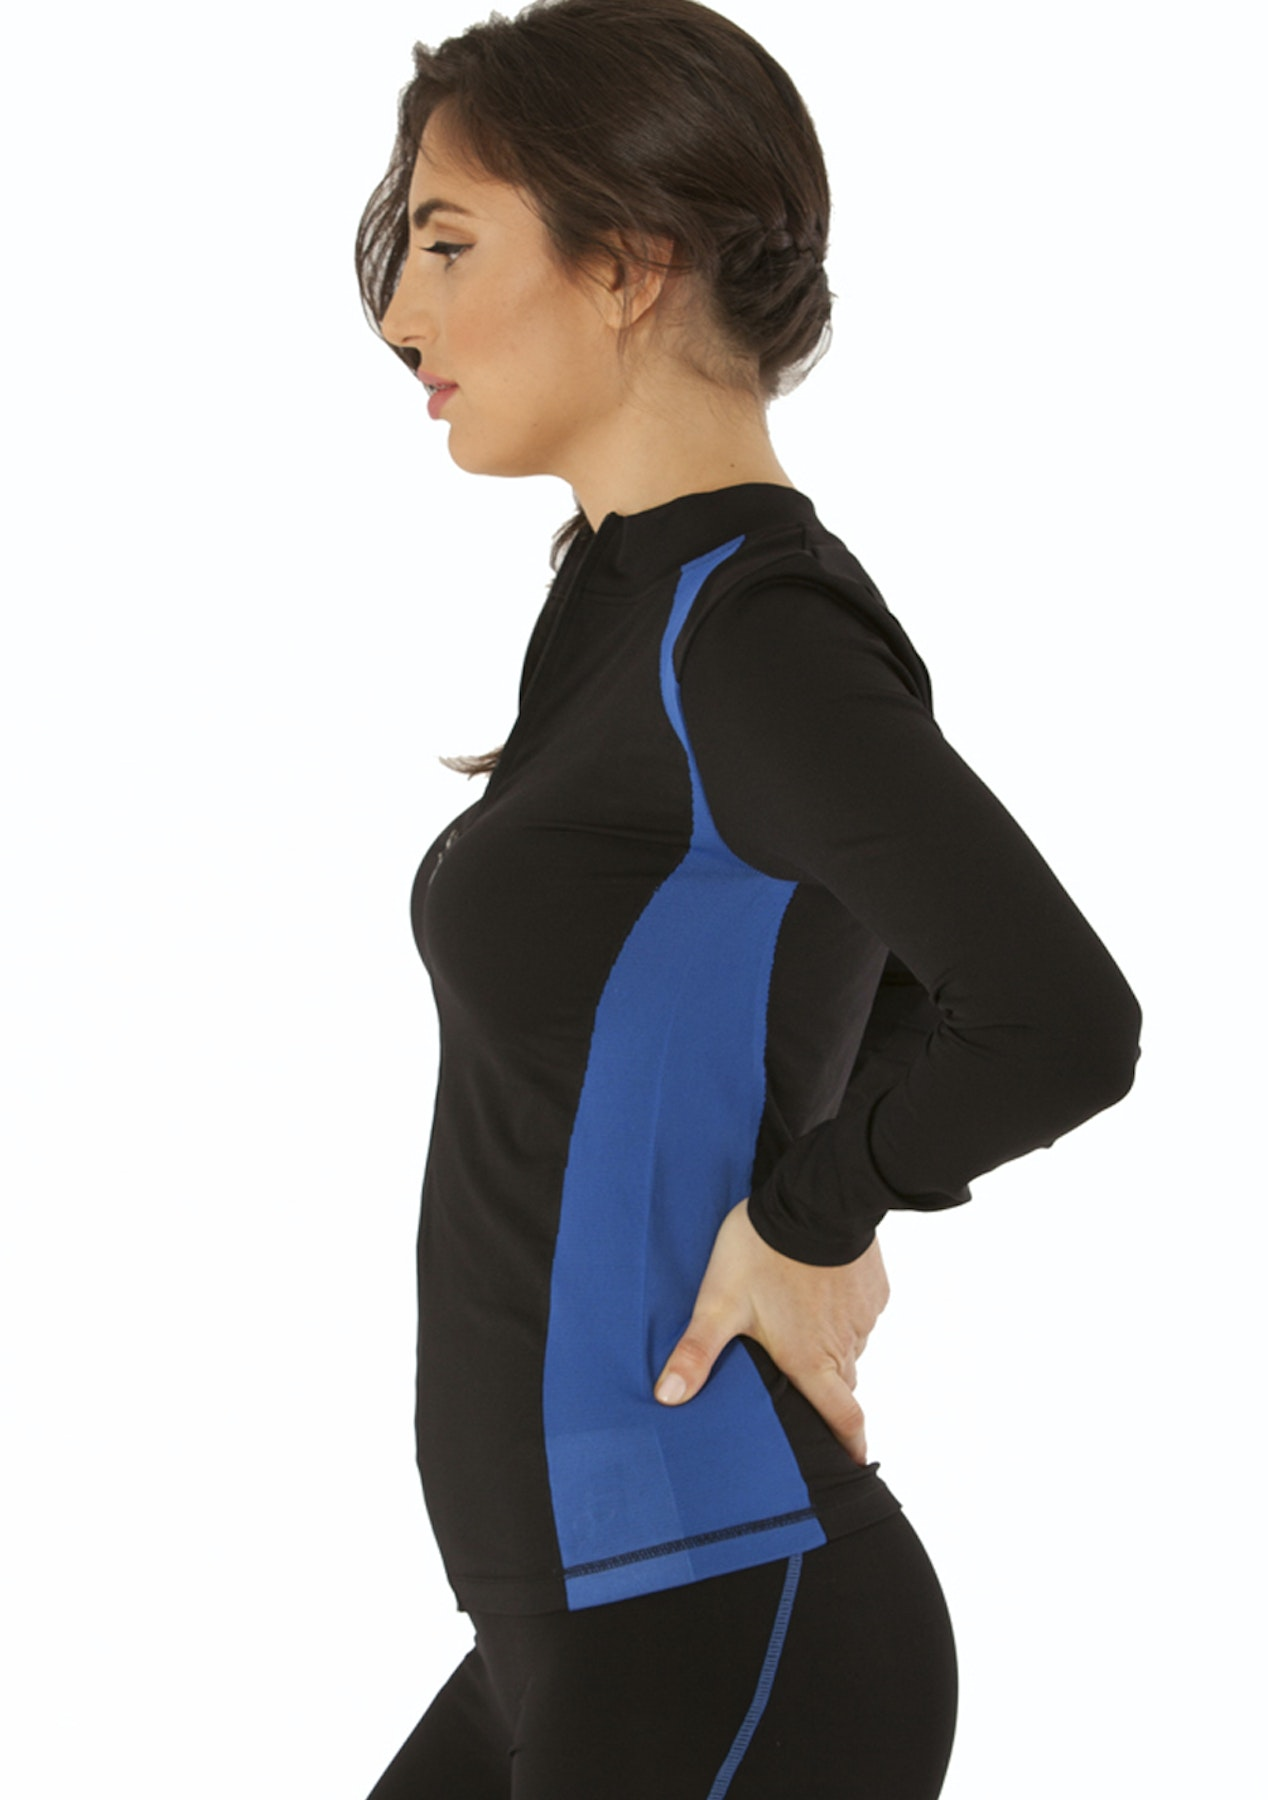 1af9425034 Electric Yoga - Jacket With Stitching - Black Royal Blue - Under $40  Activewear Sell Out - Onceit